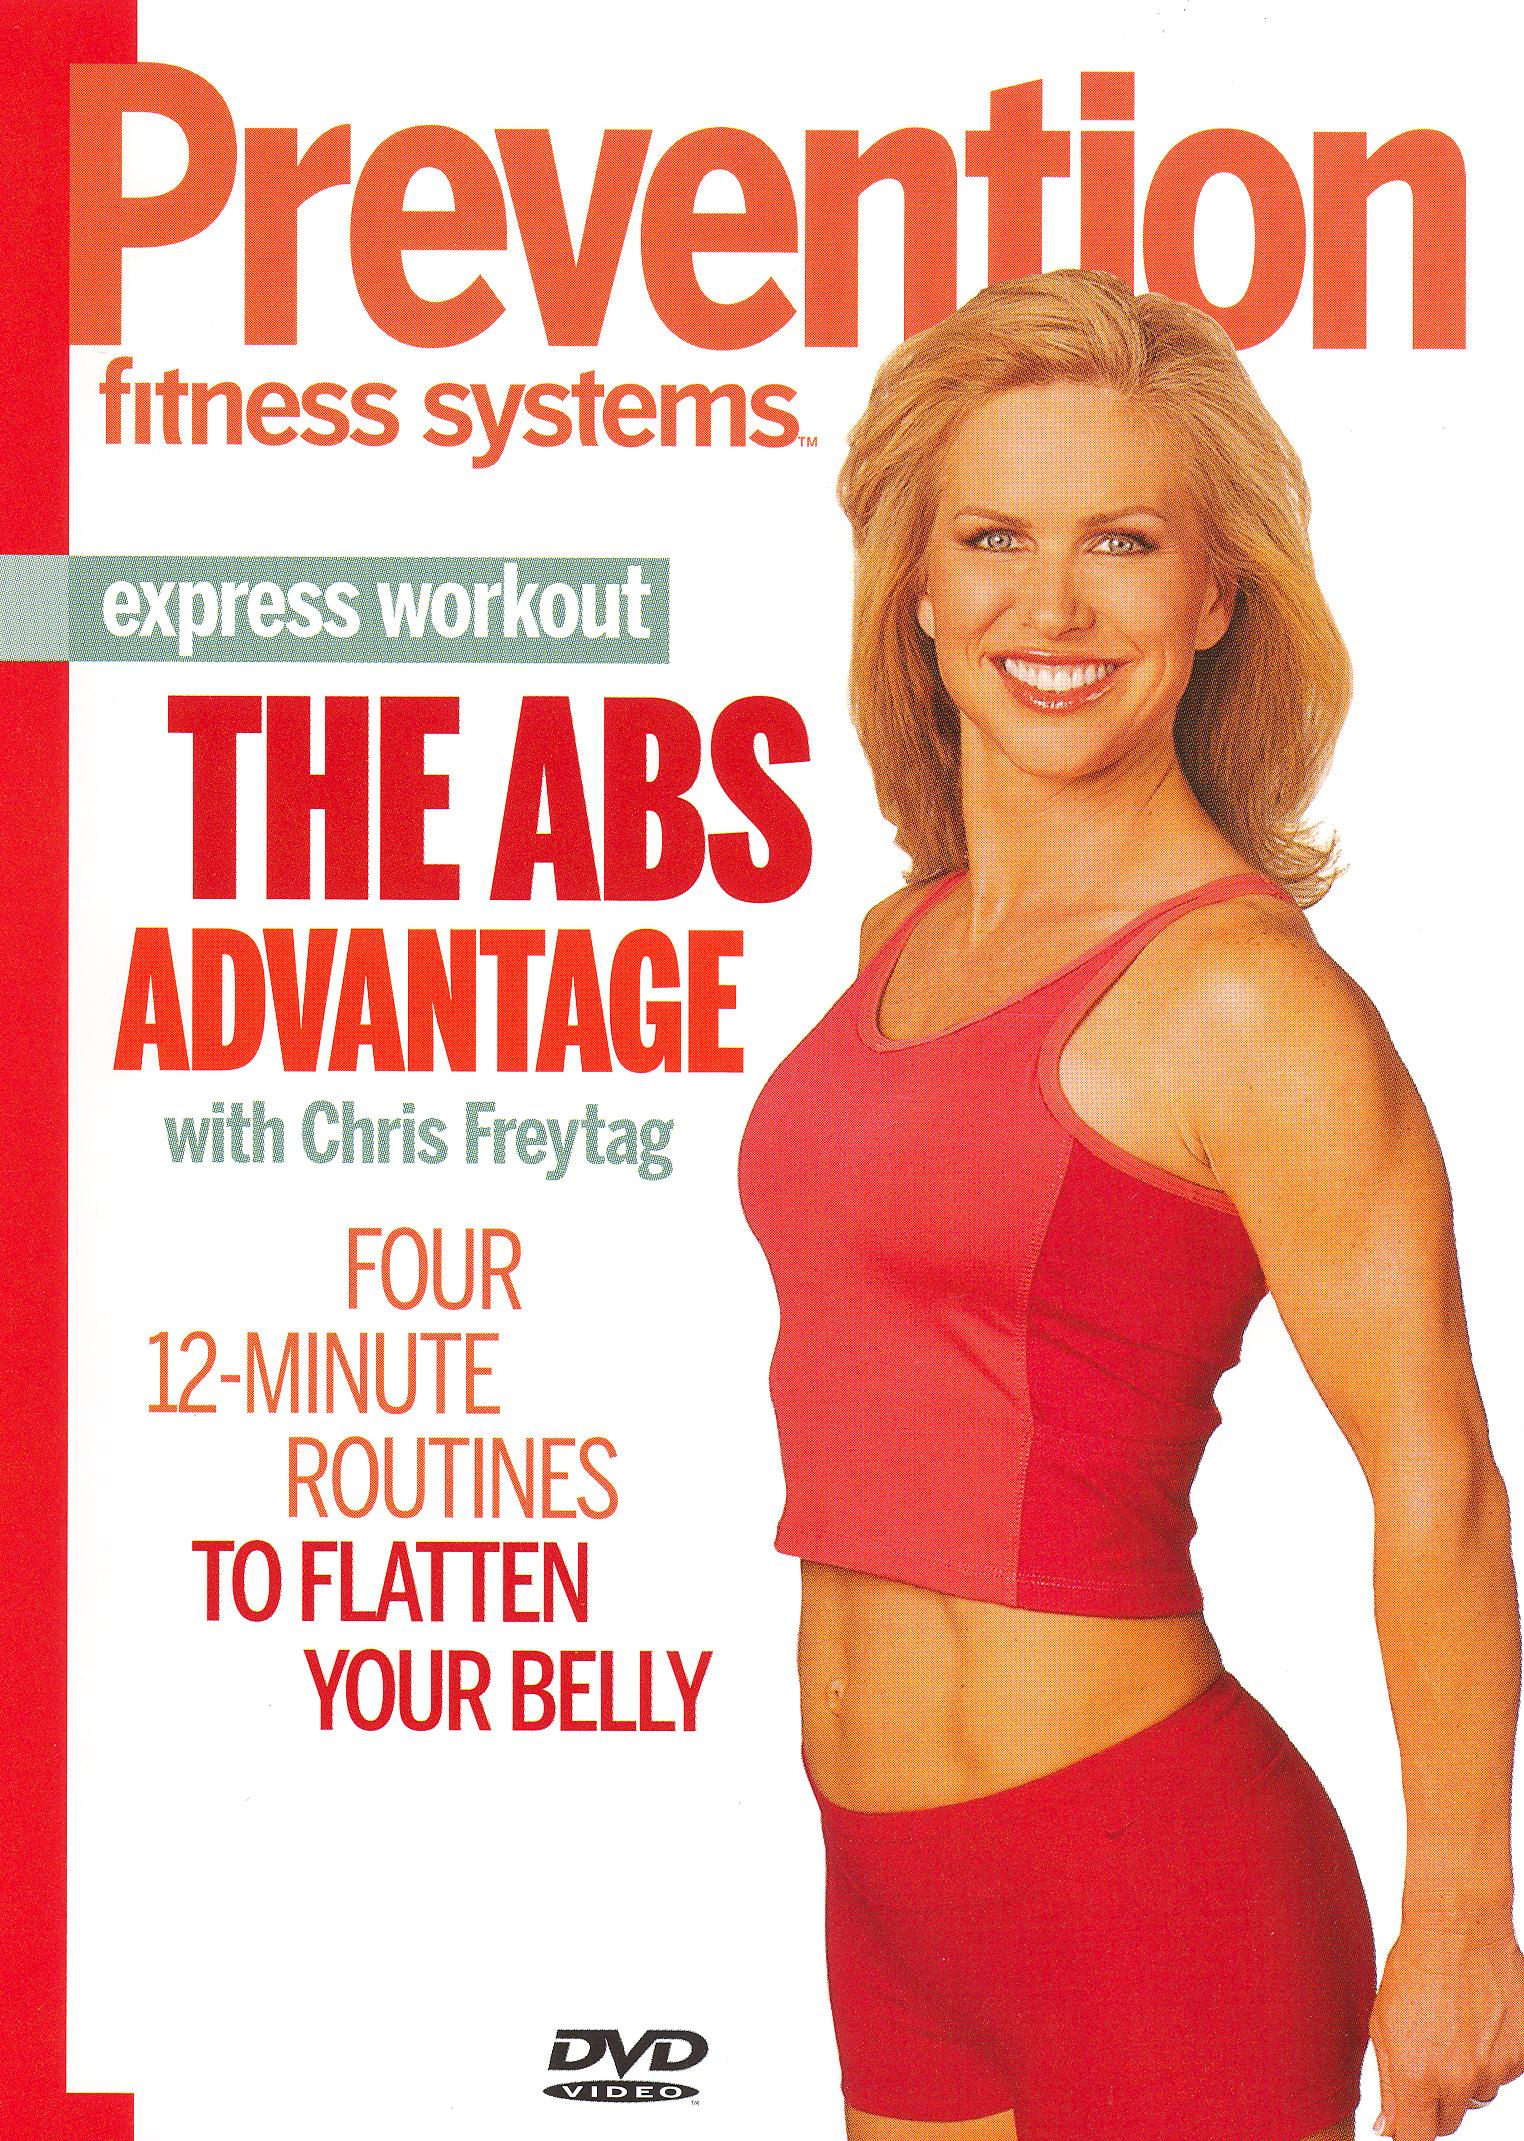 Prevention Fitness Systems: Express Workout - The Abs Advantage